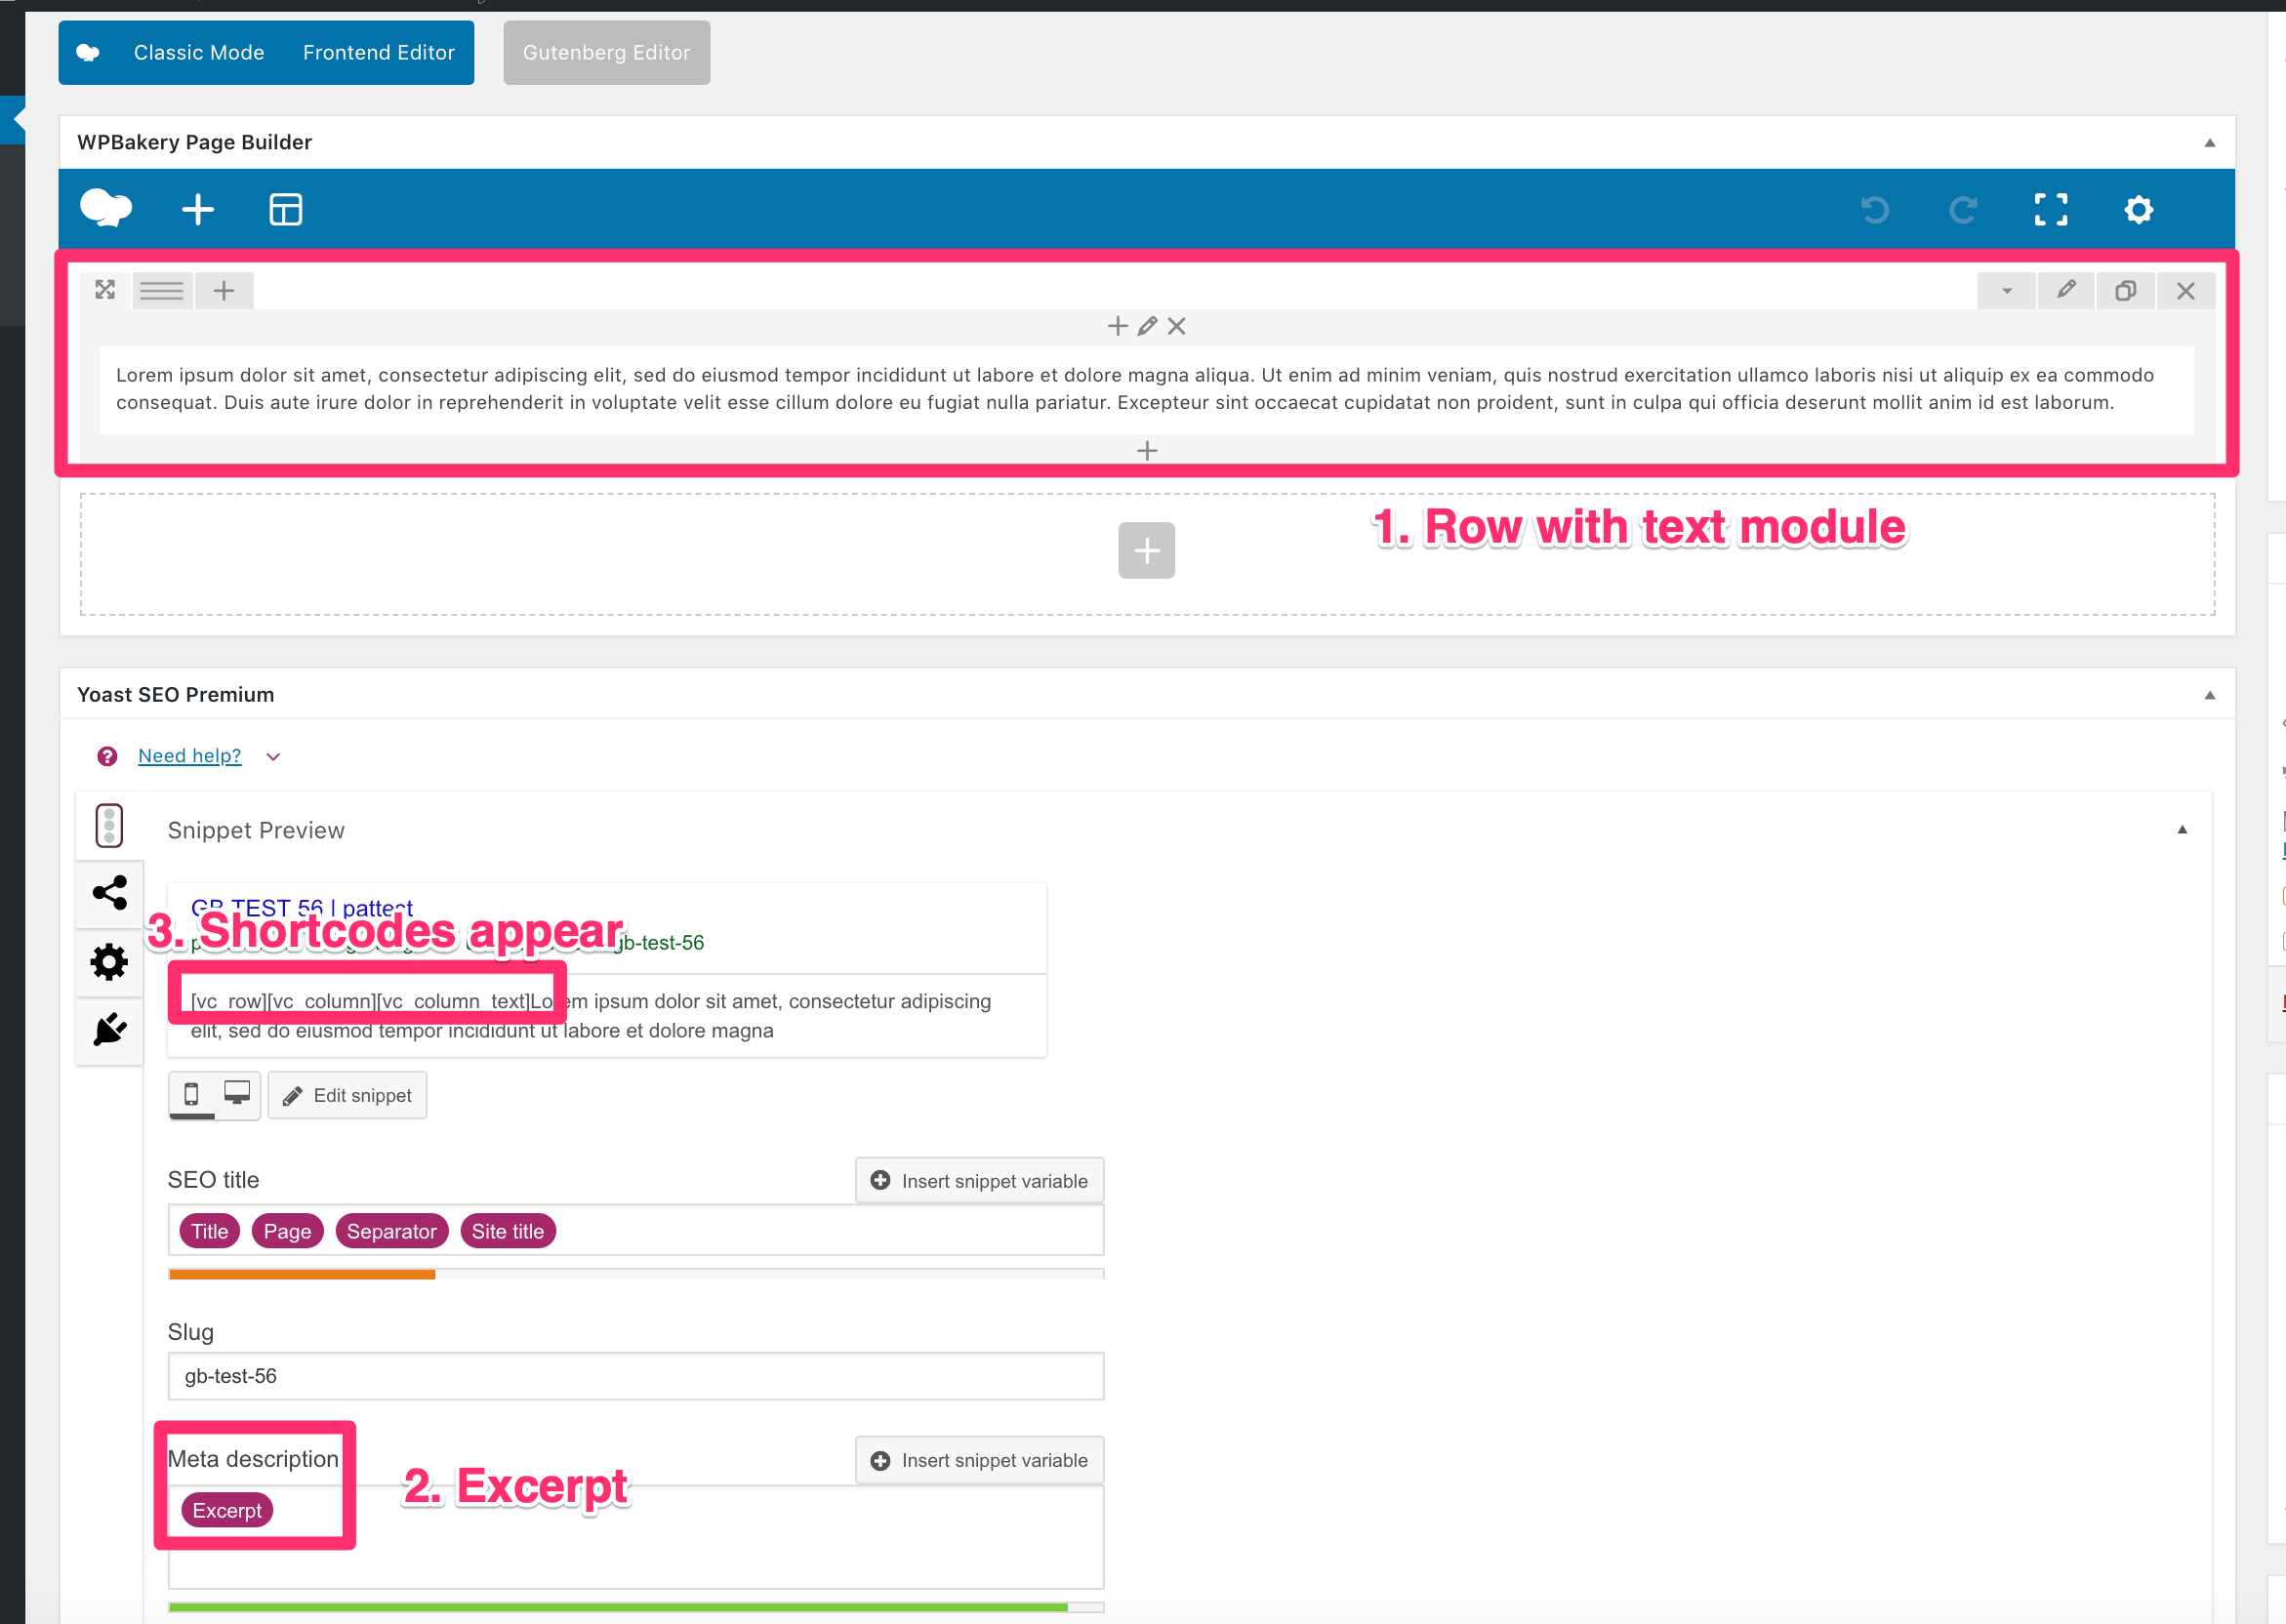 WPBakery Row Module Shortcodes Appearing in Snippet Preview